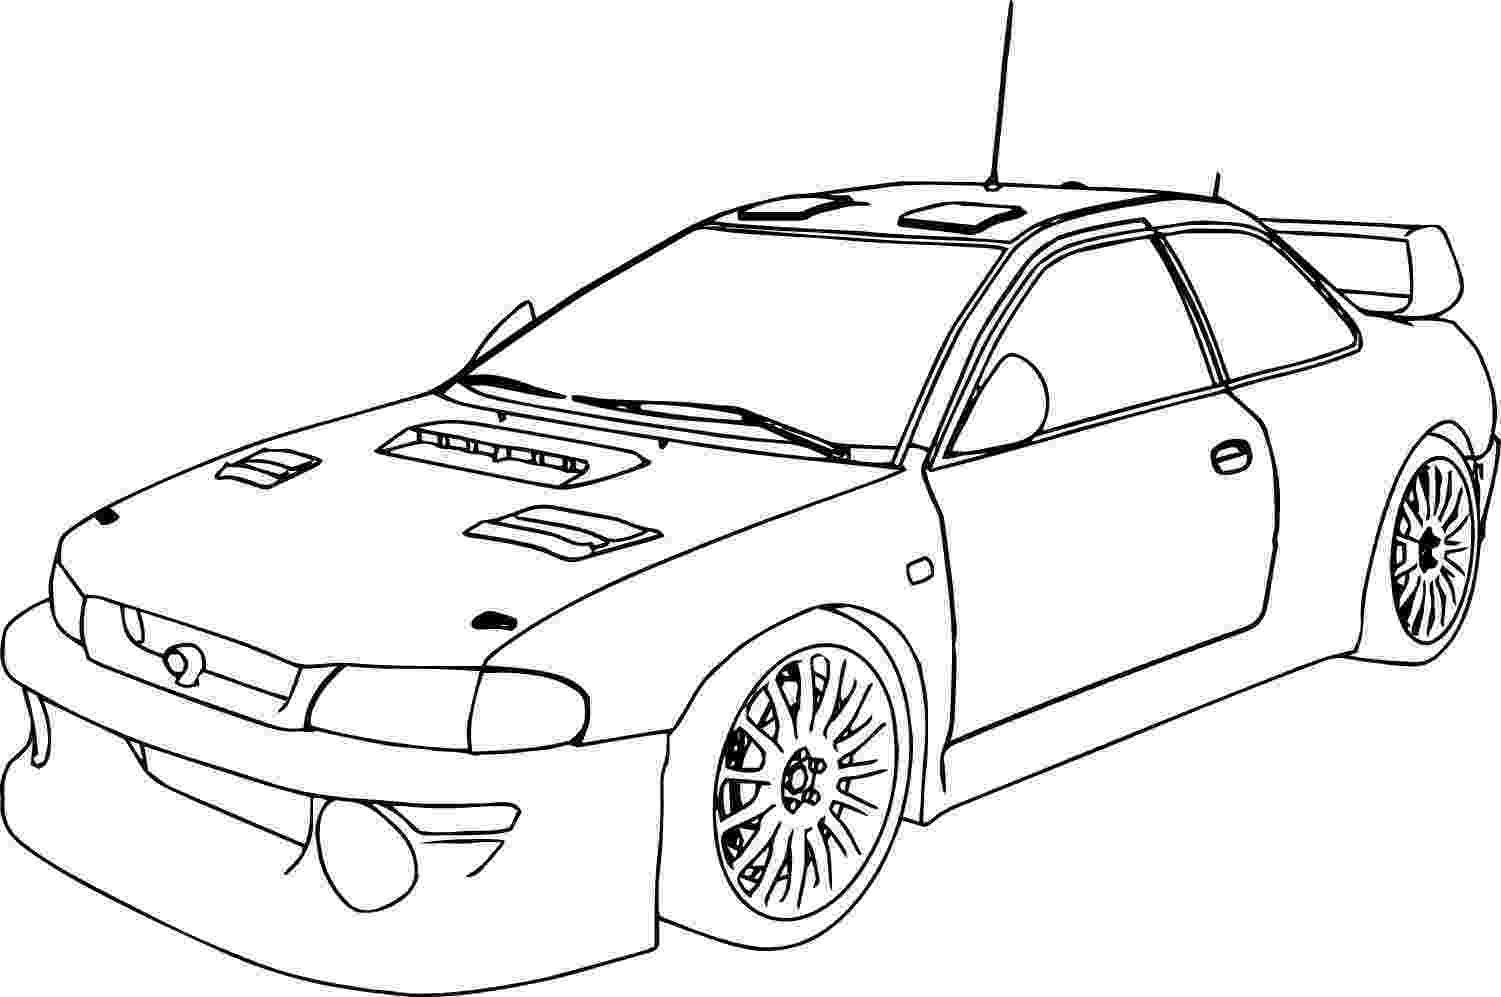 cars coloring book free printable race car coloring pages for kids coloring cars book